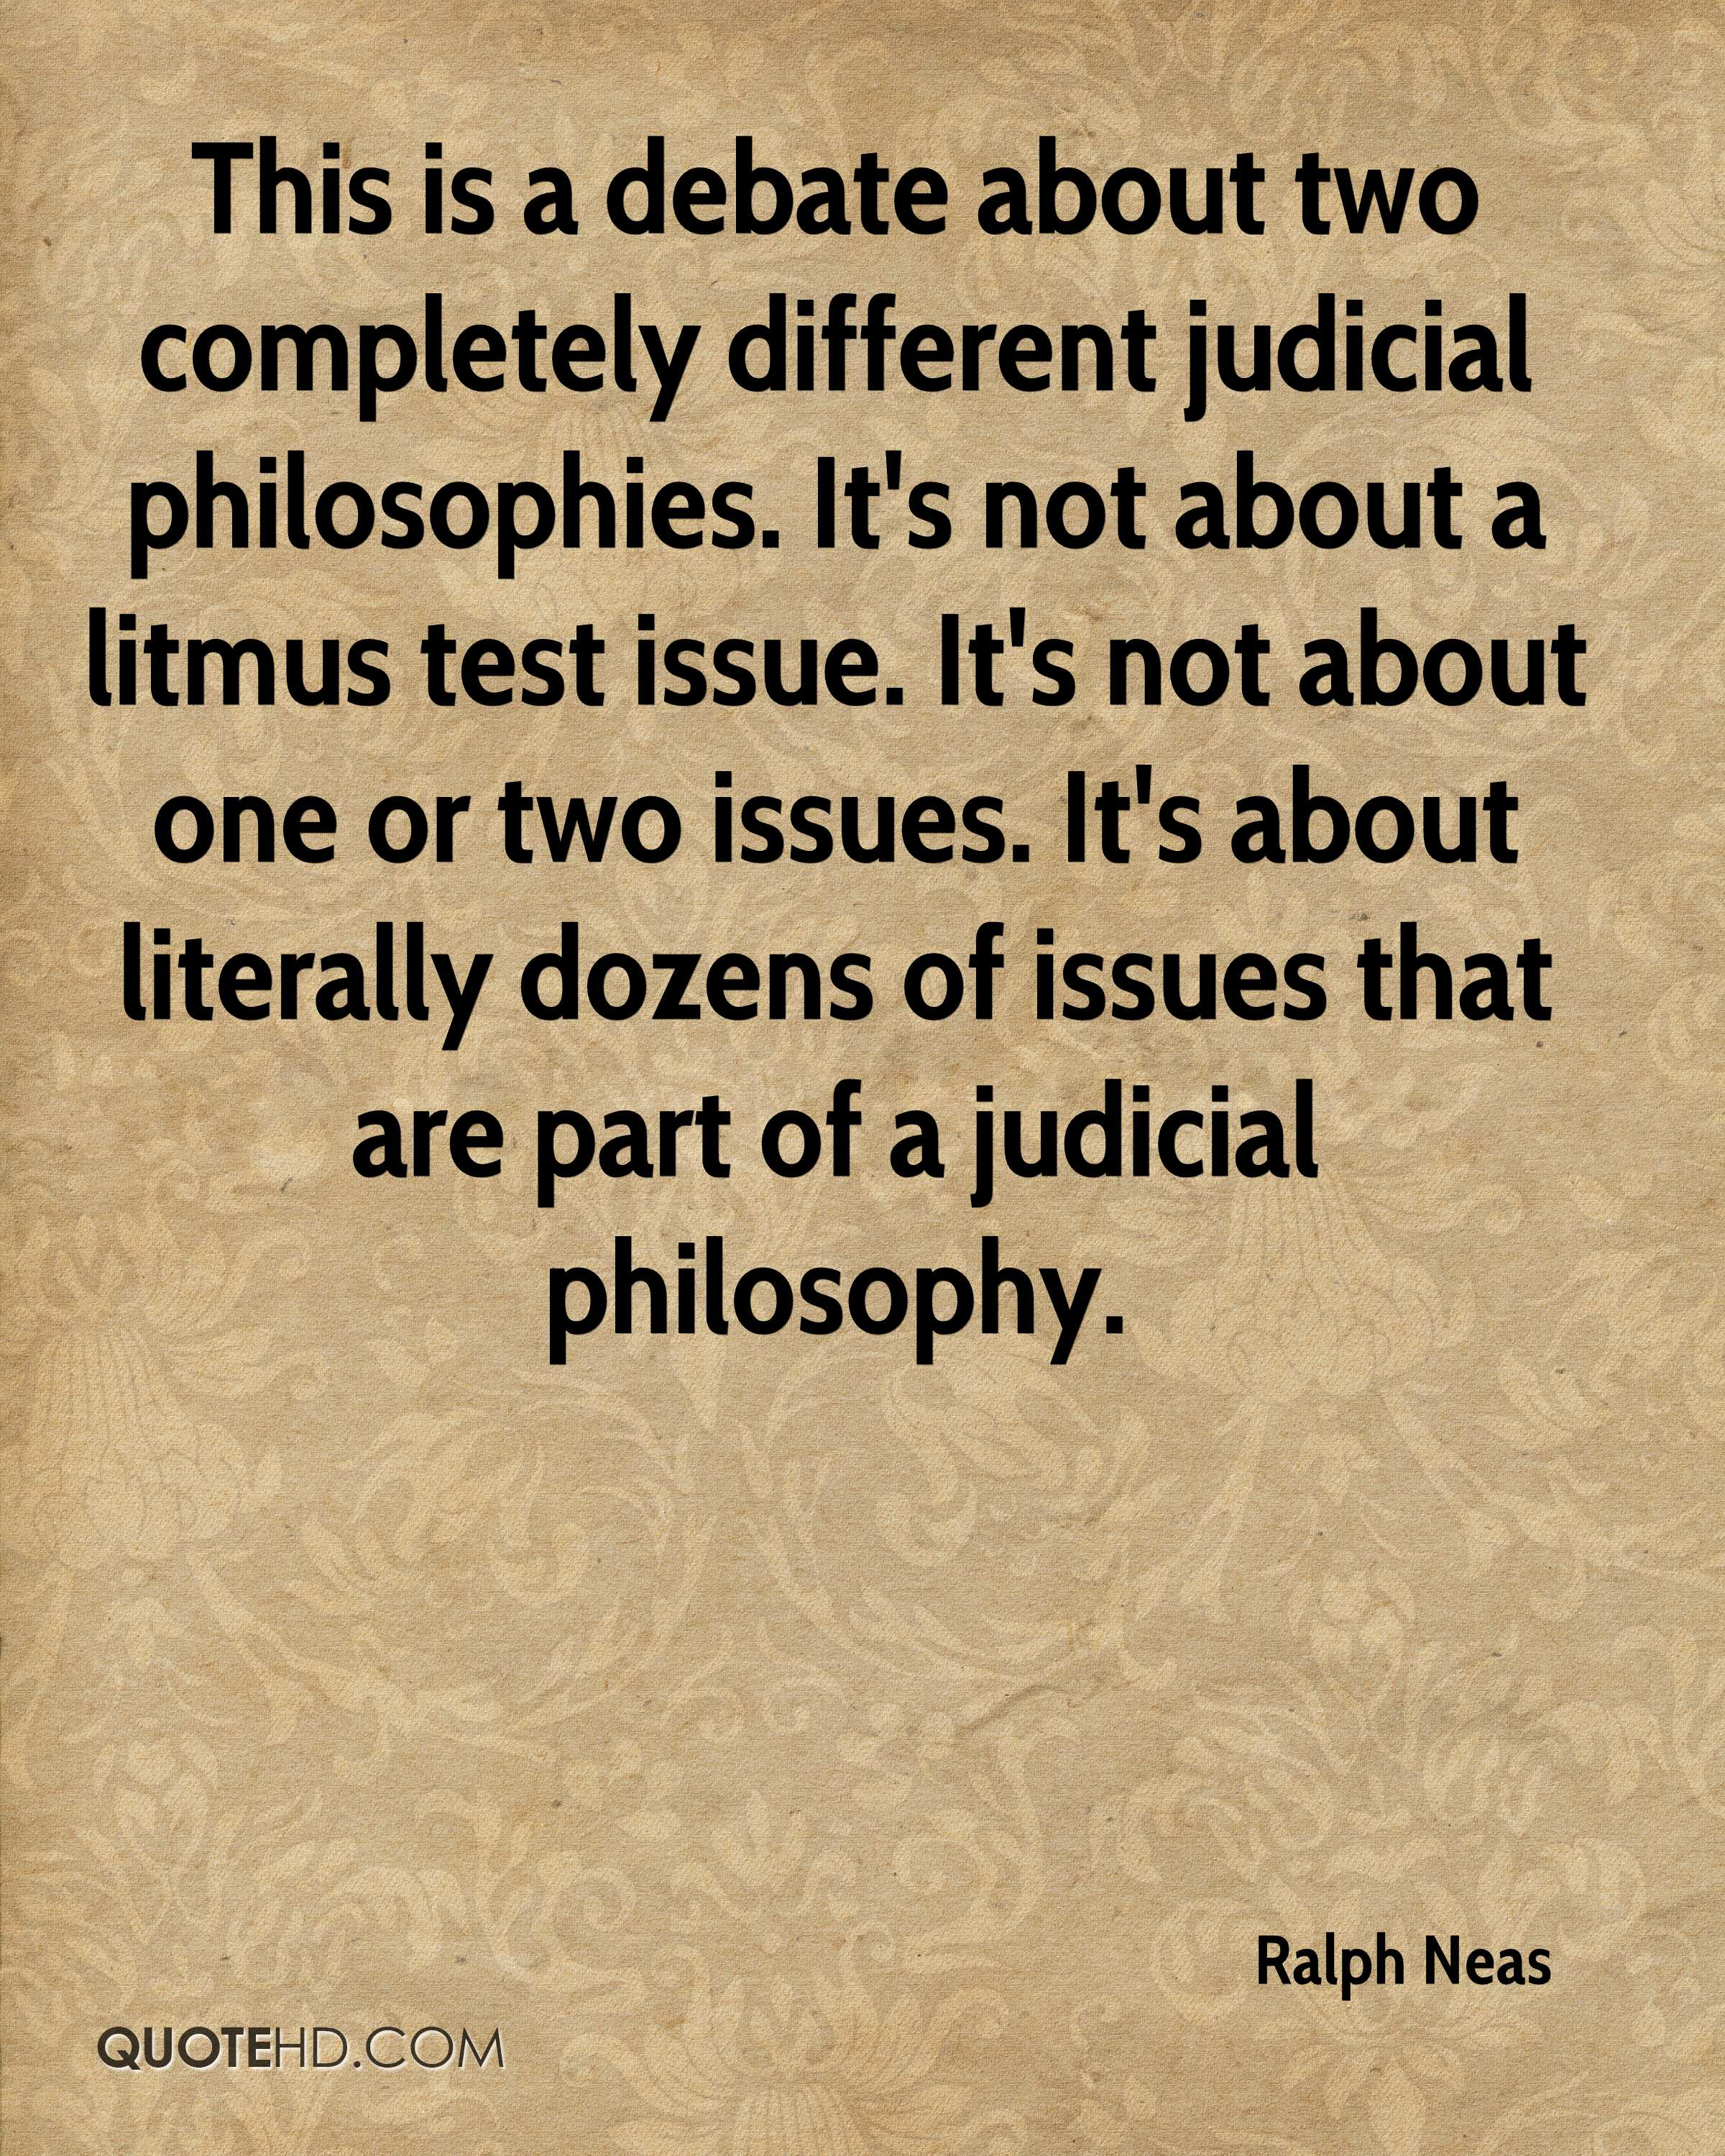 This is a debate about two completely different judicial philosophies. It's not about a litmus test issue. It's not about one or two issues. It's about literally dozens of issues that are part of a judicial philosophy.